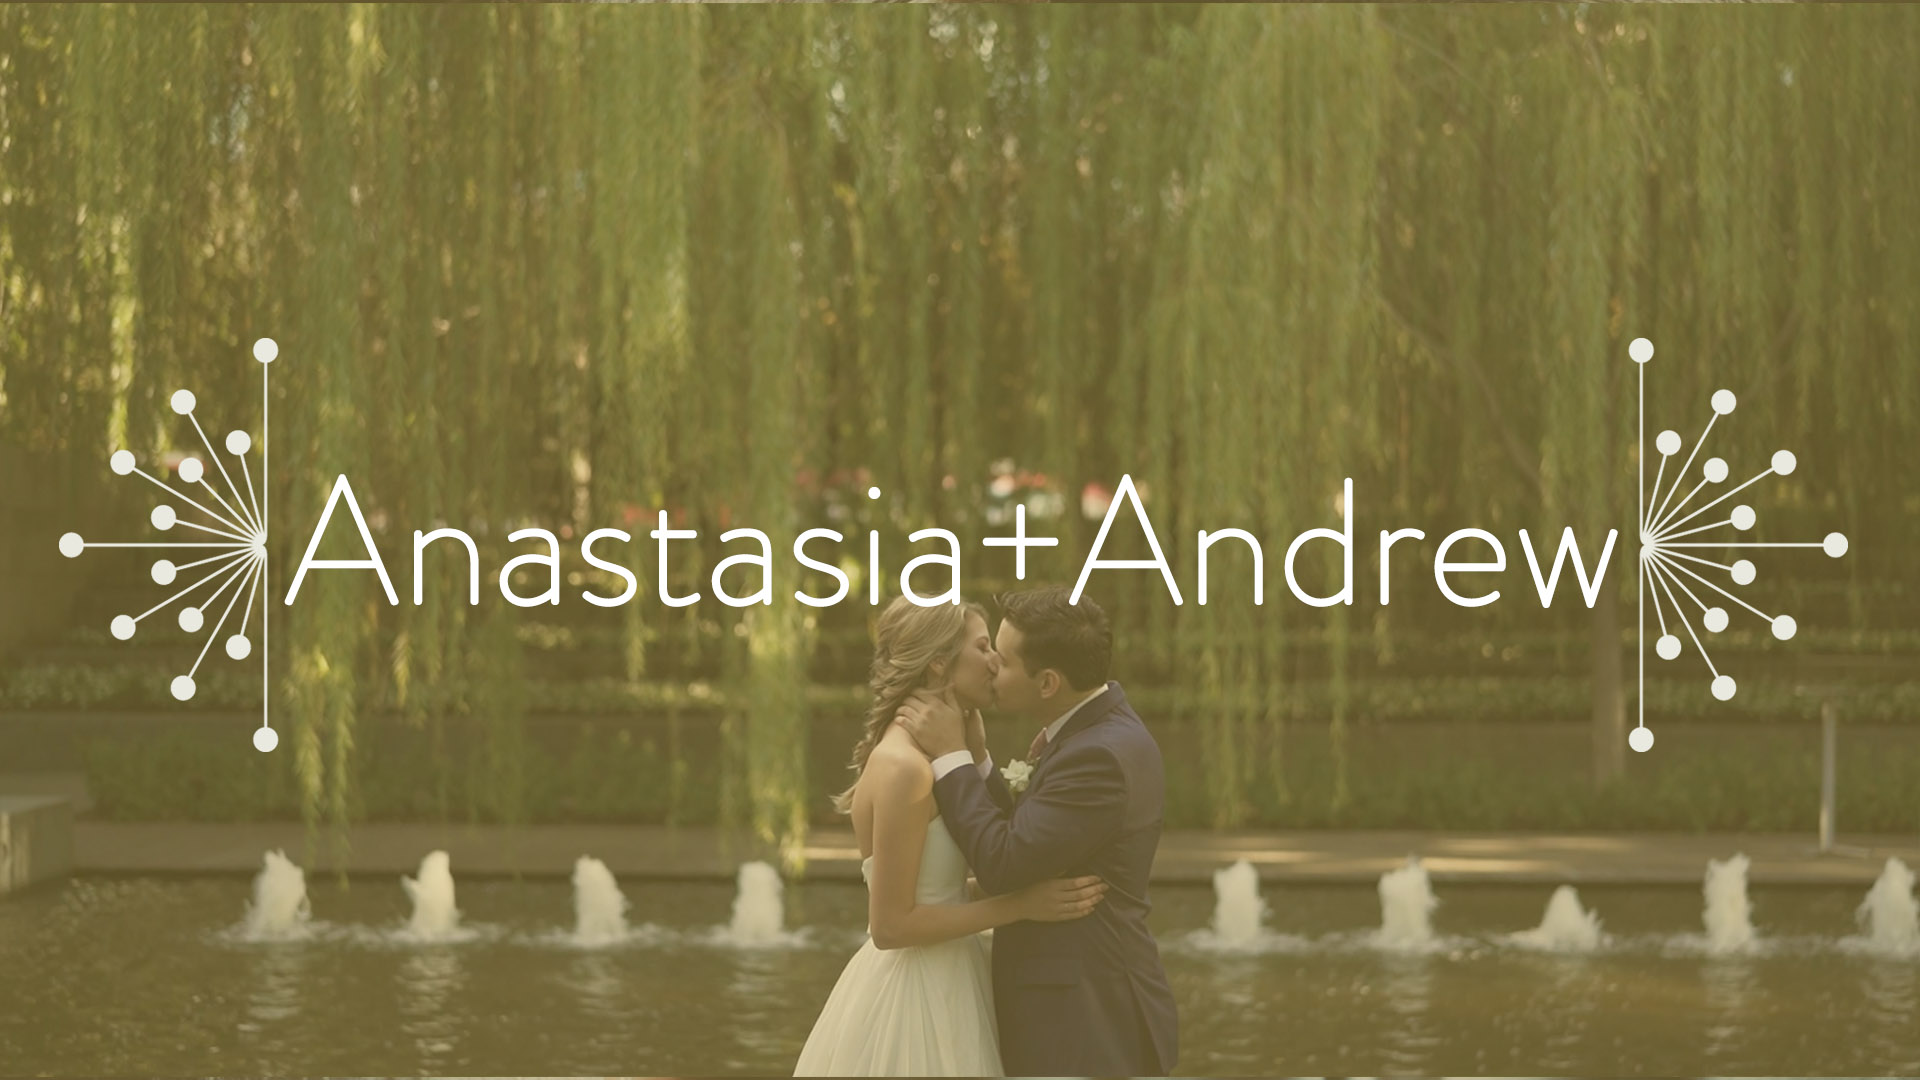 Anastasia + Andrew | Dallas, Texas | Nasher Sculpture Center